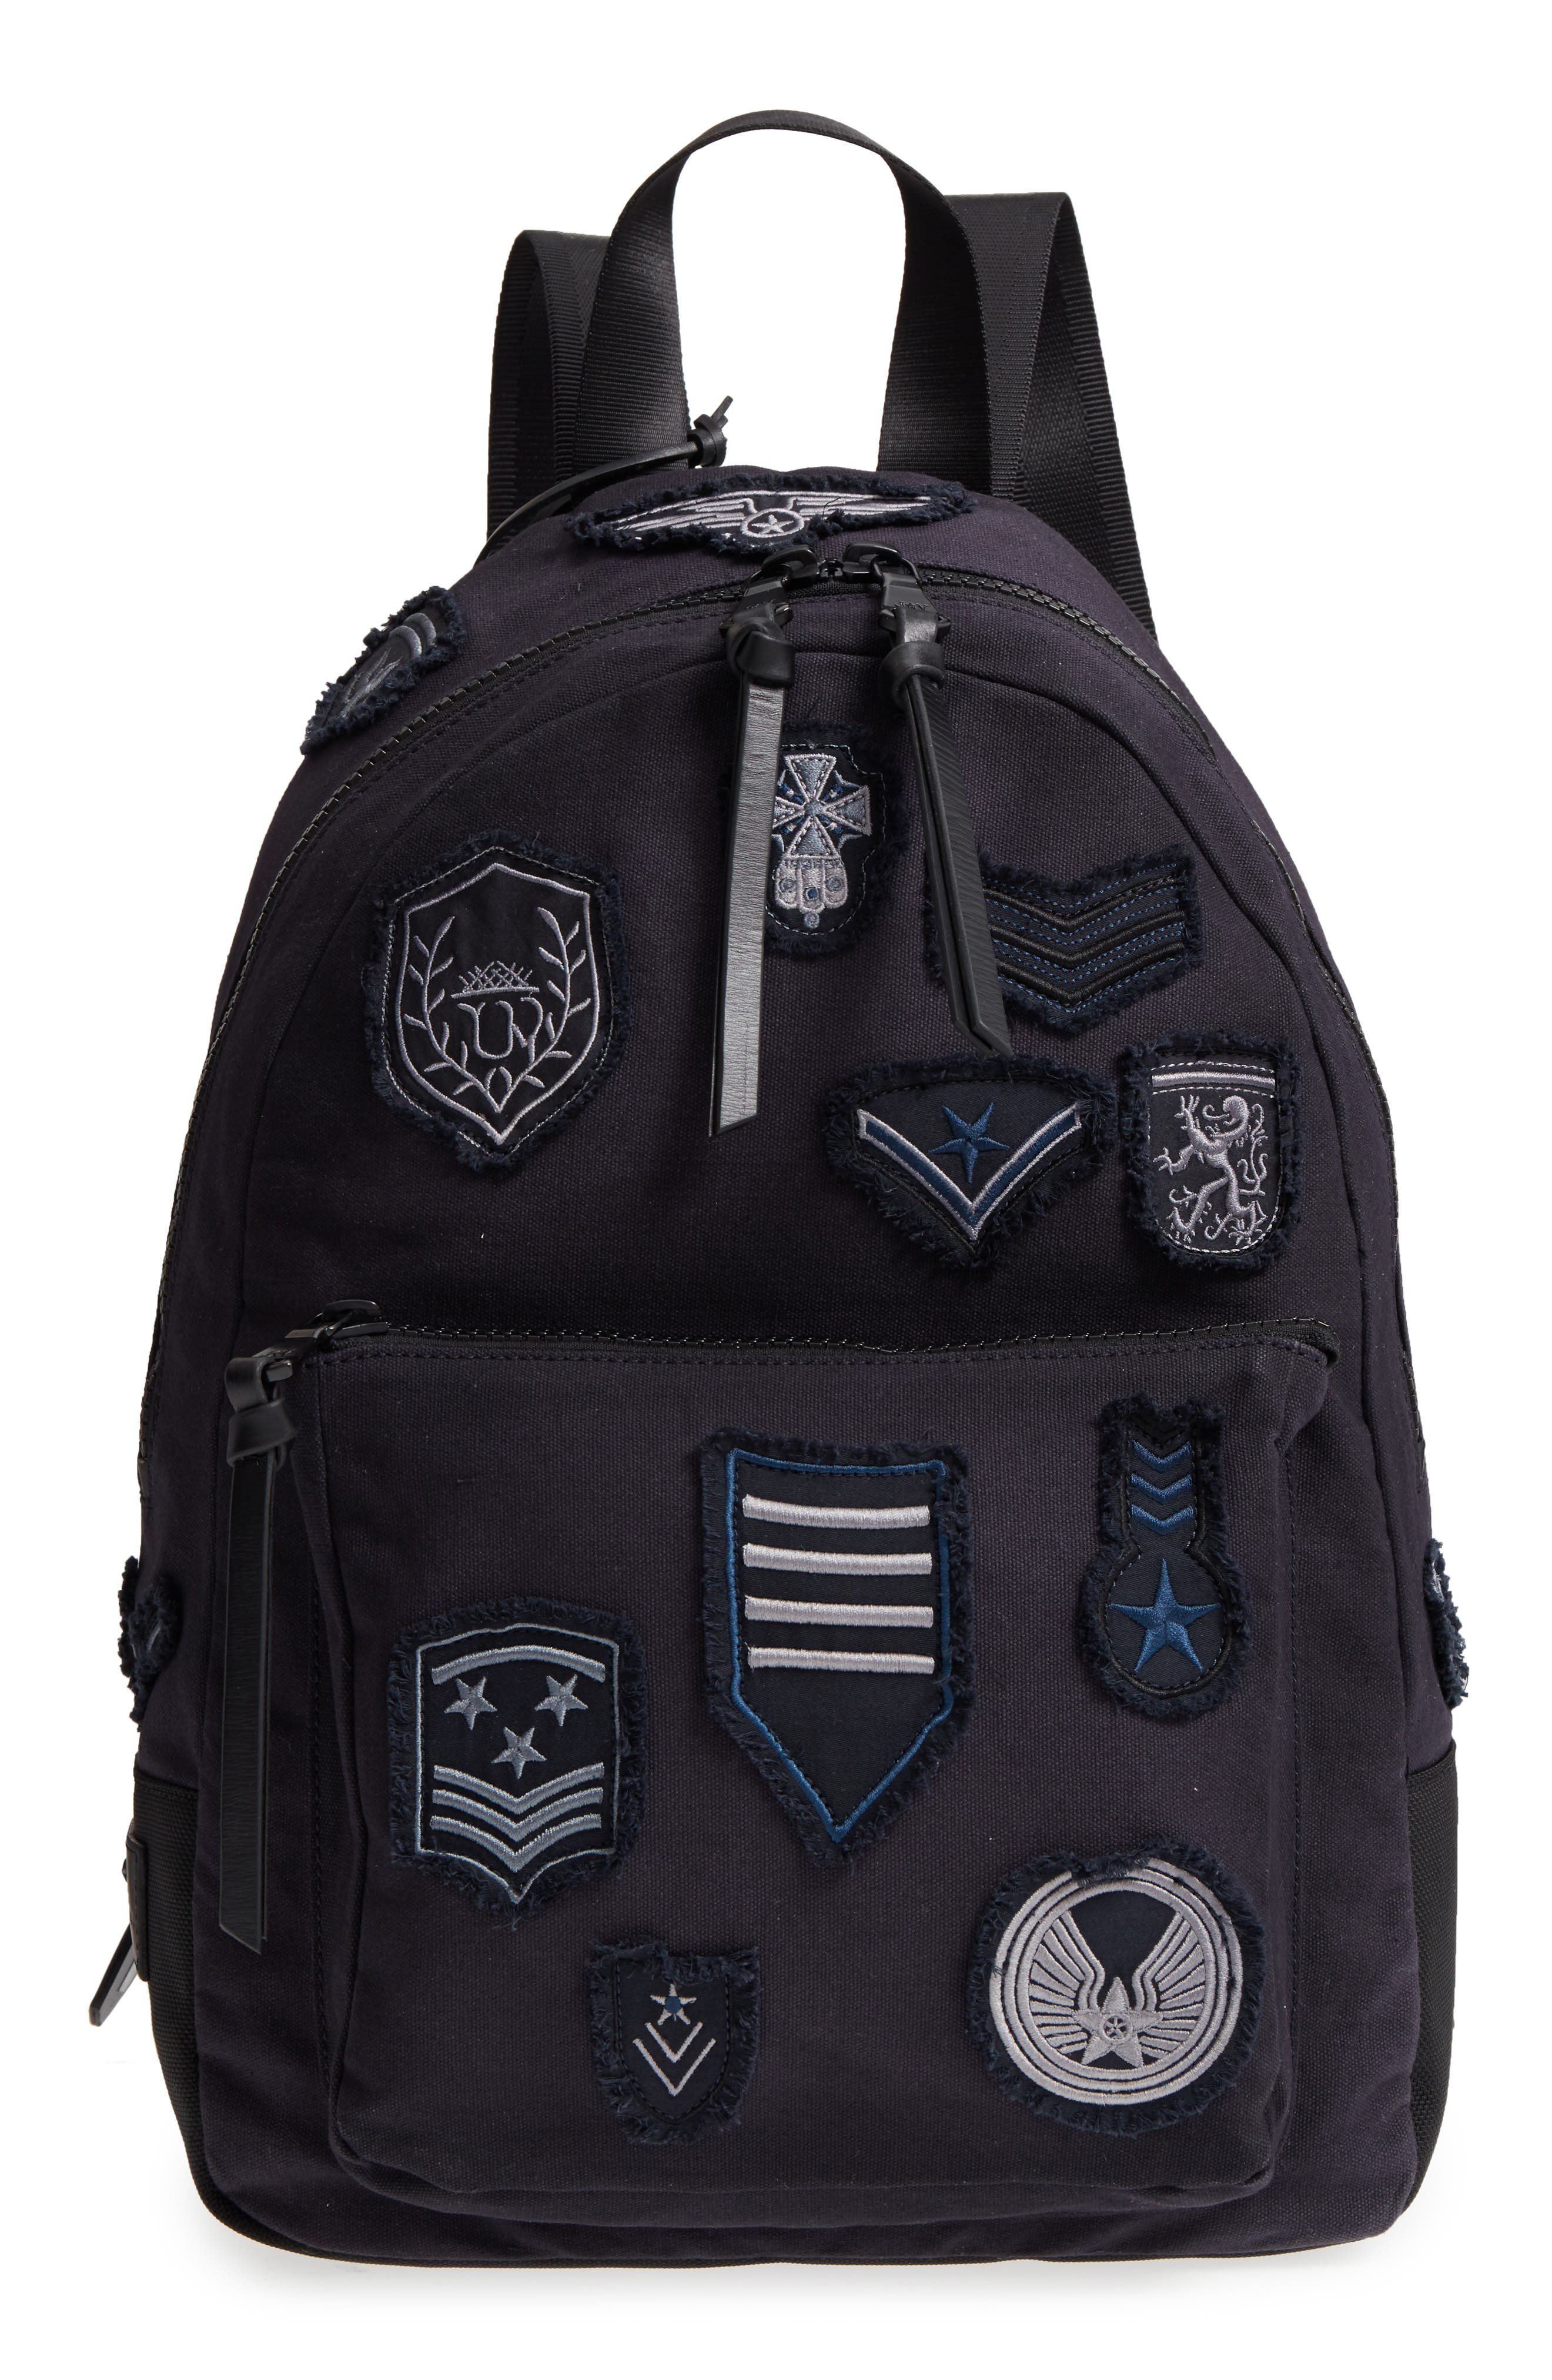 Gibson Patch Backpack,                             Main thumbnail 1, color,